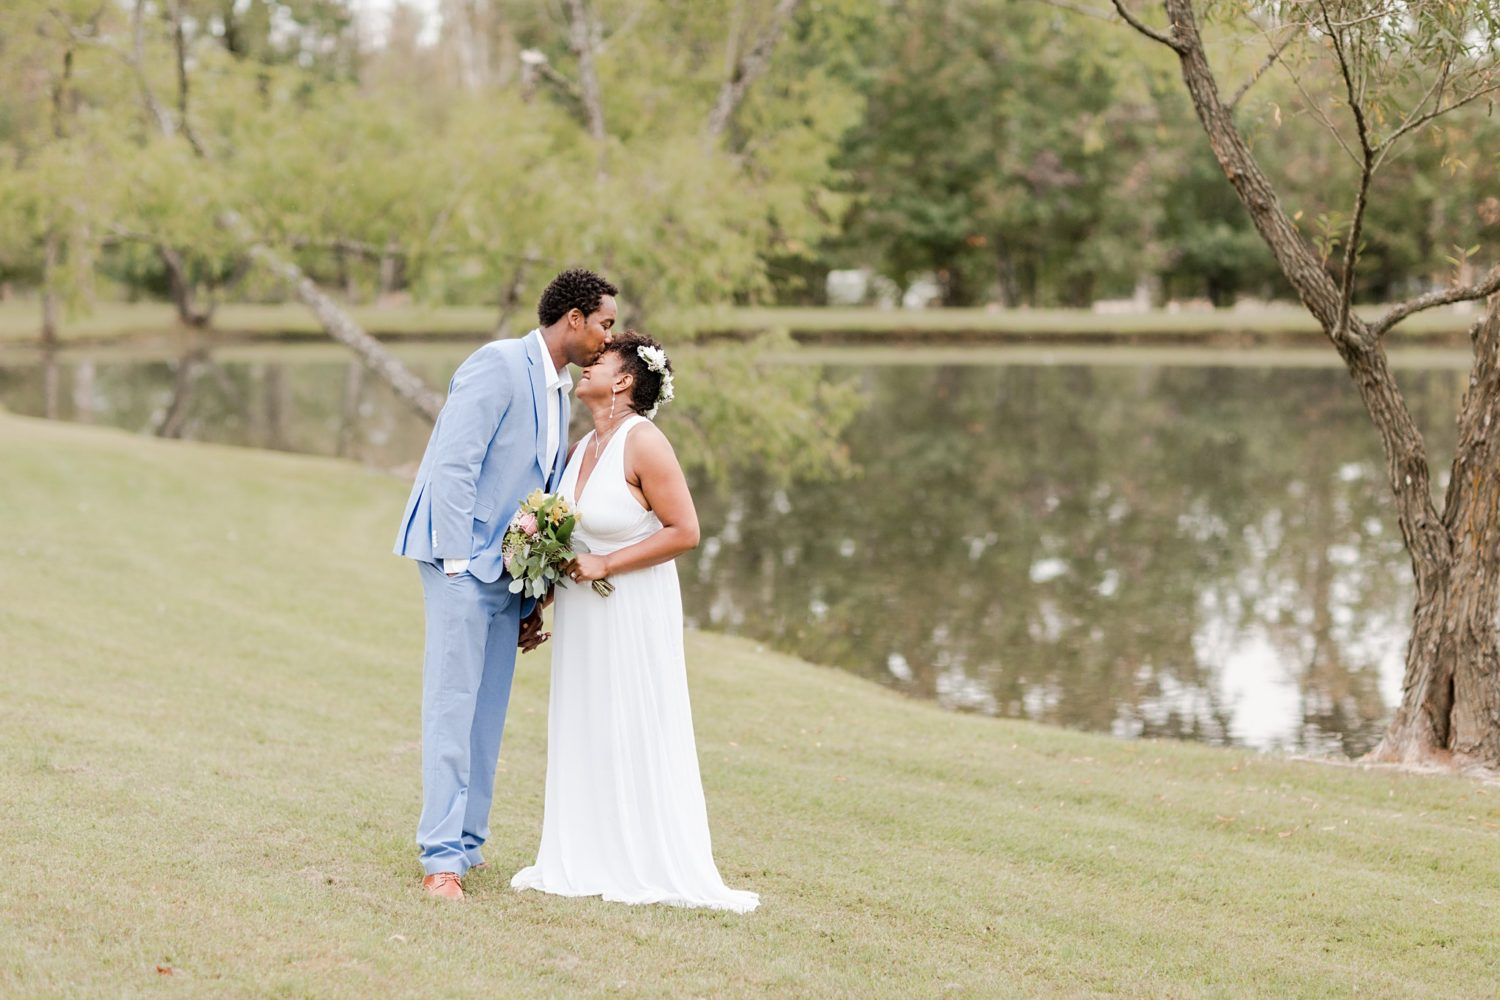 Small Outdoor Fall Intimate Wedding in Memphis